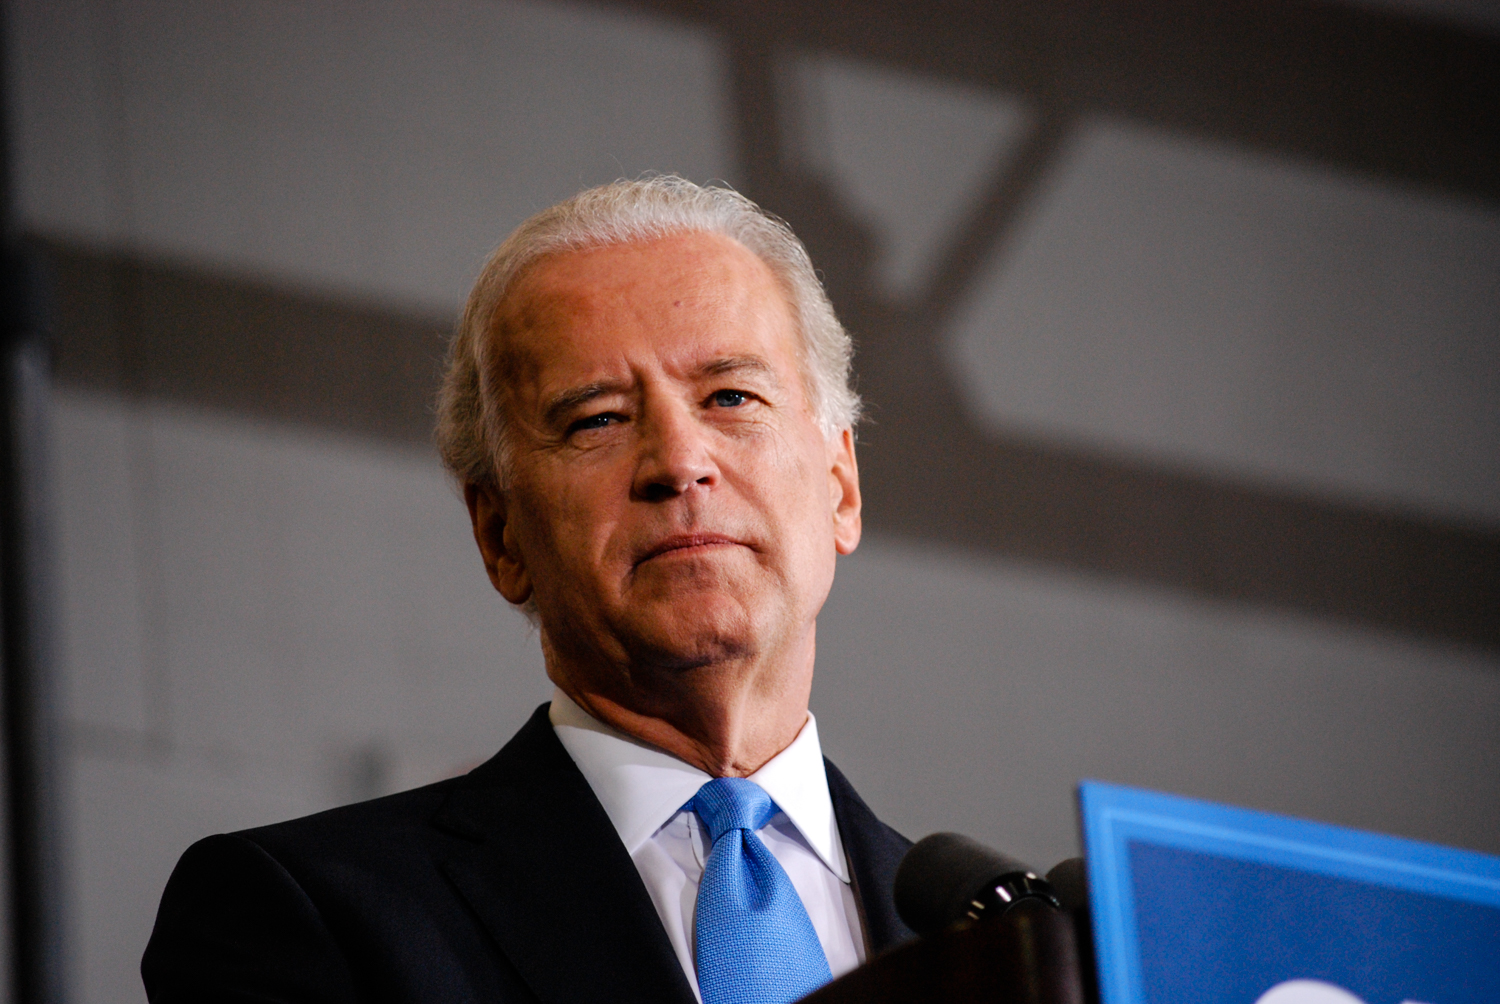 Joe Biden speaking at Obama For America event in St. Clair Shores, MI, 2008